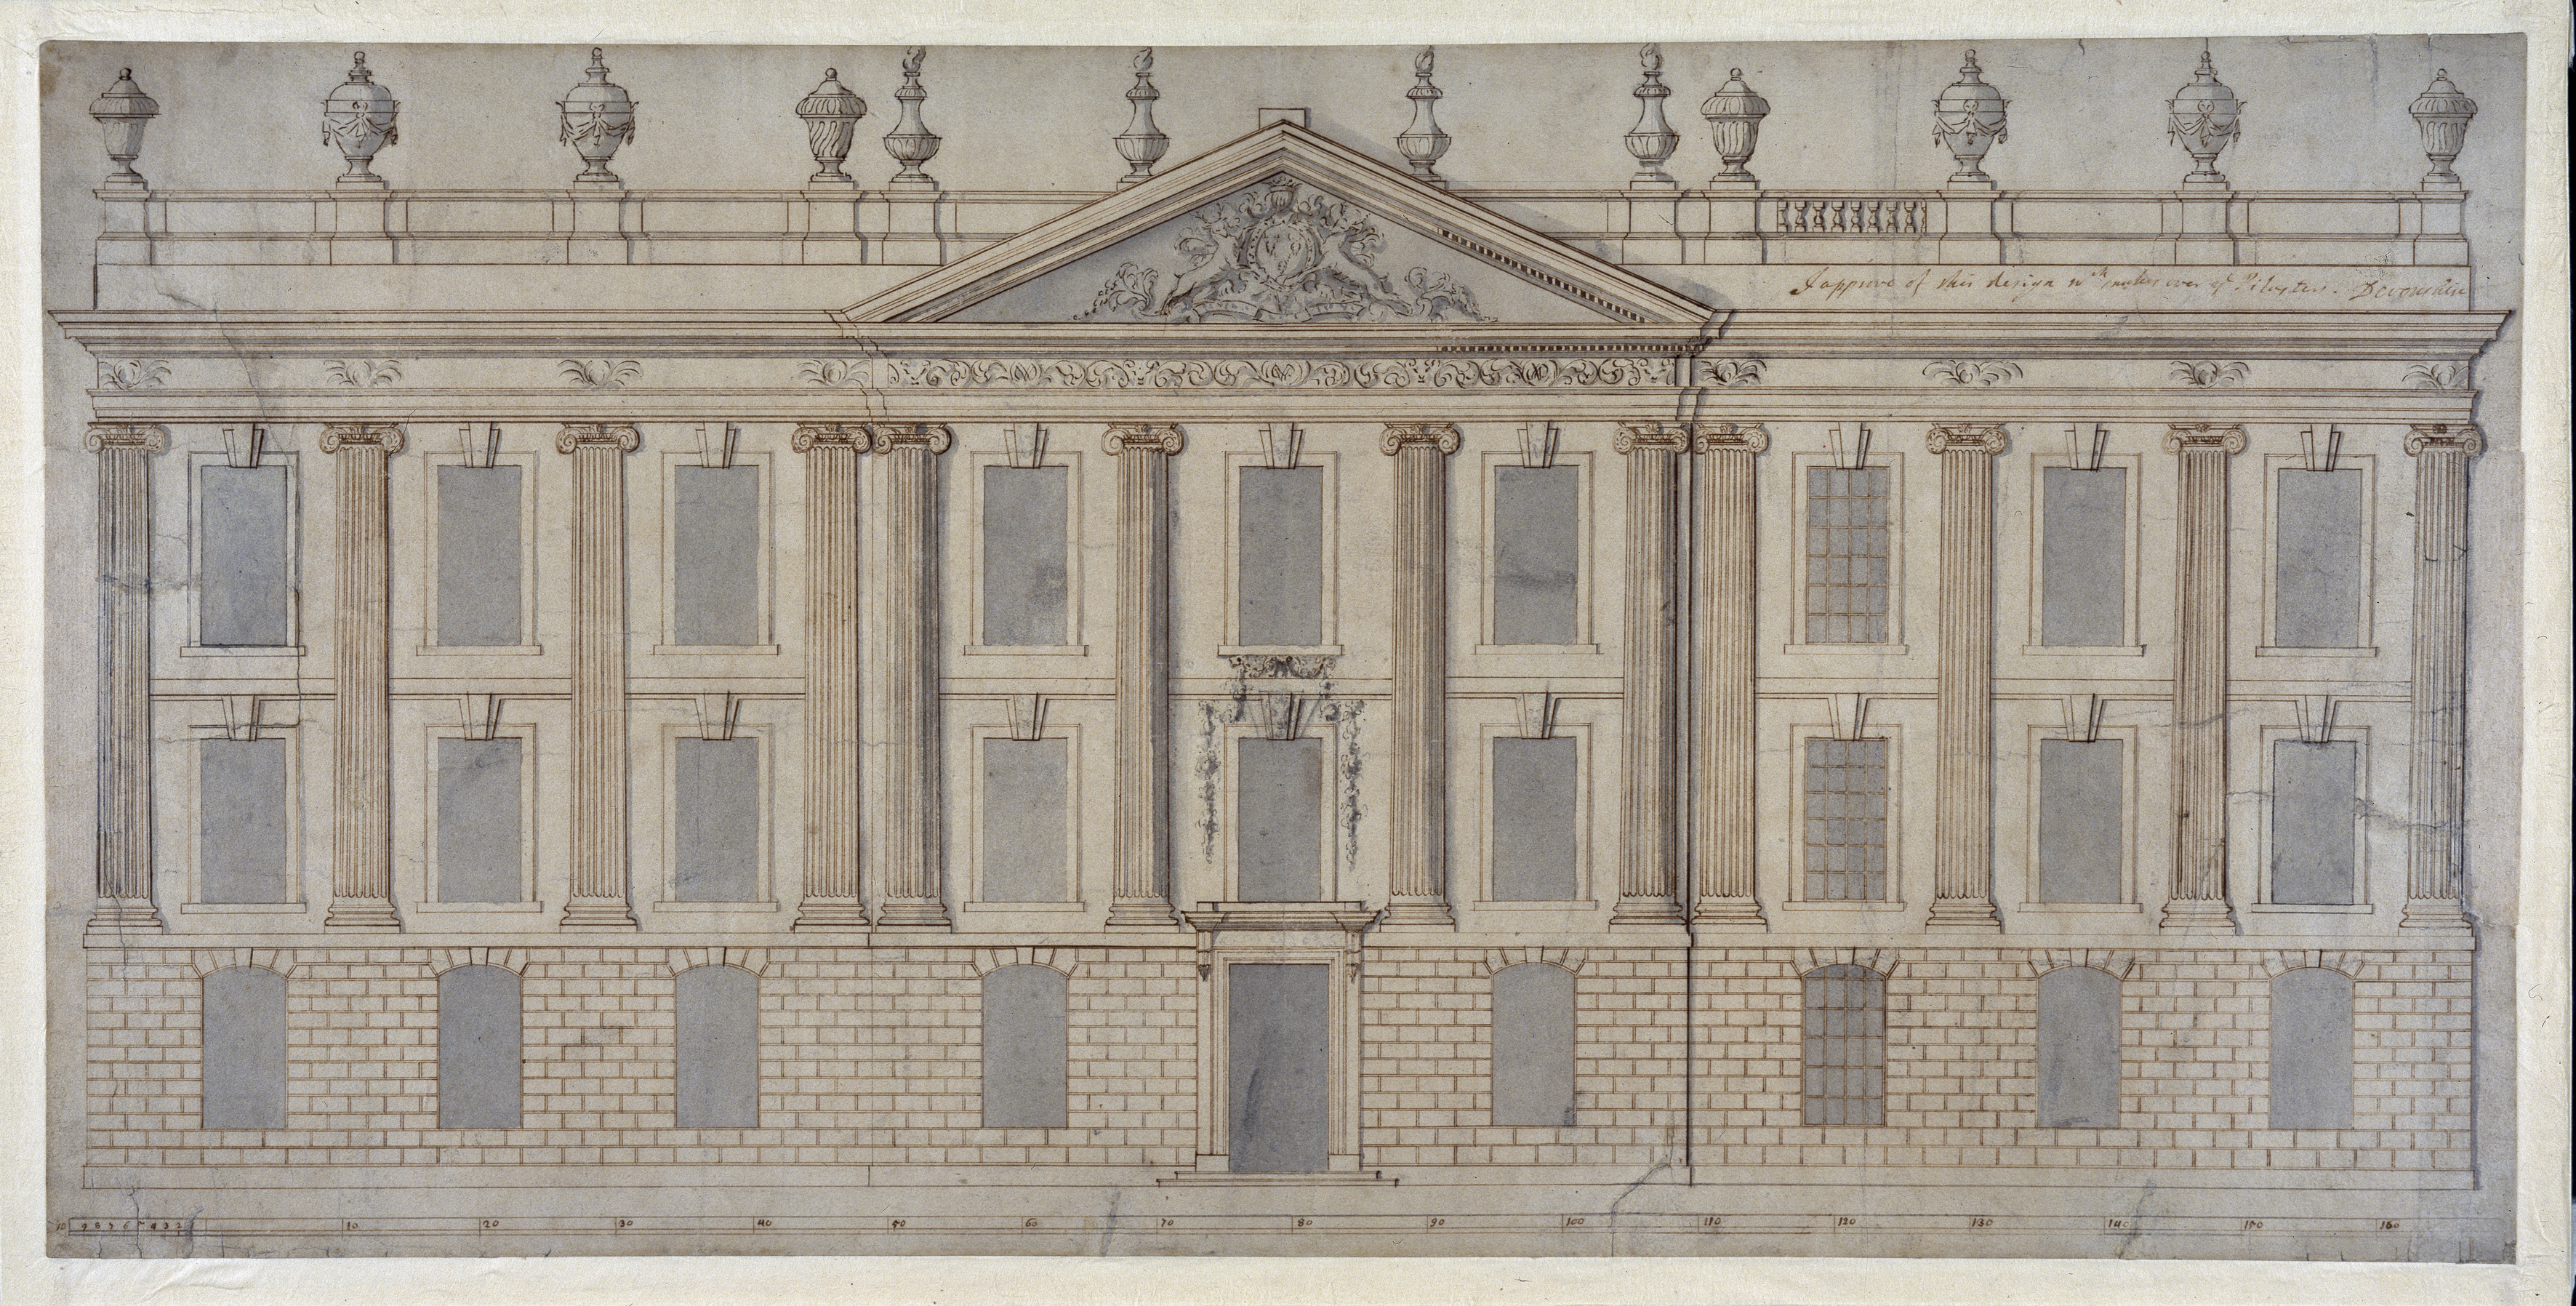 The Influence of the French Court on the 1st Duke of Devonshire's